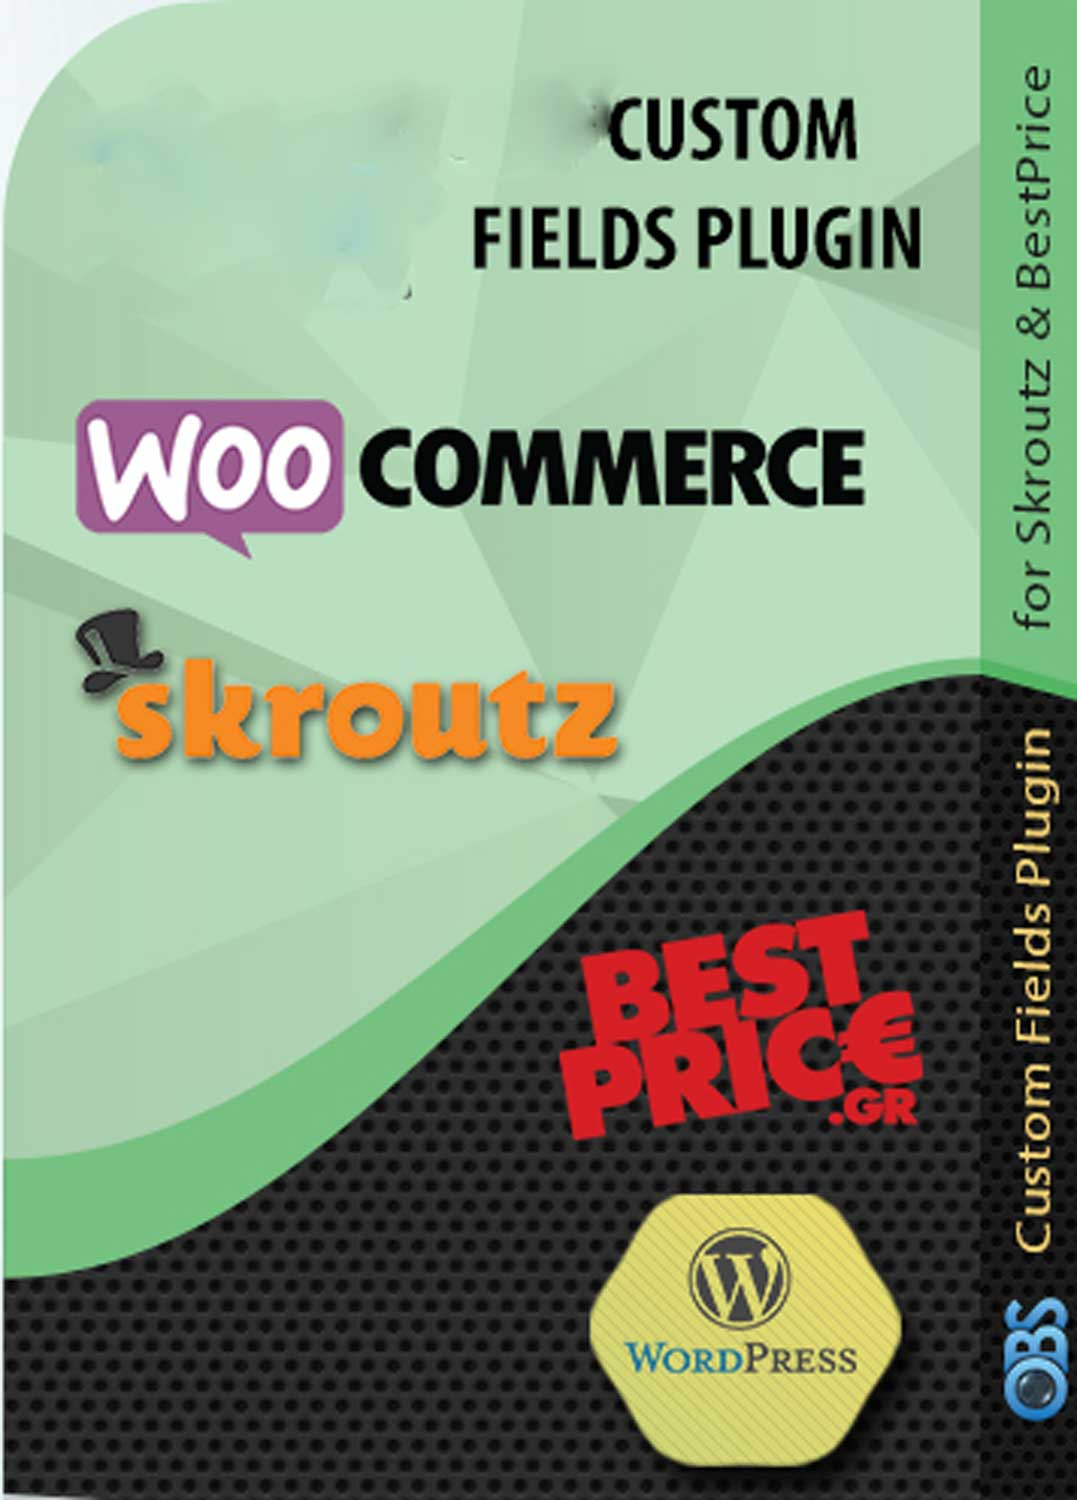 Woocommerce XML Feed για Skroutz.gr και Bestprice.gr